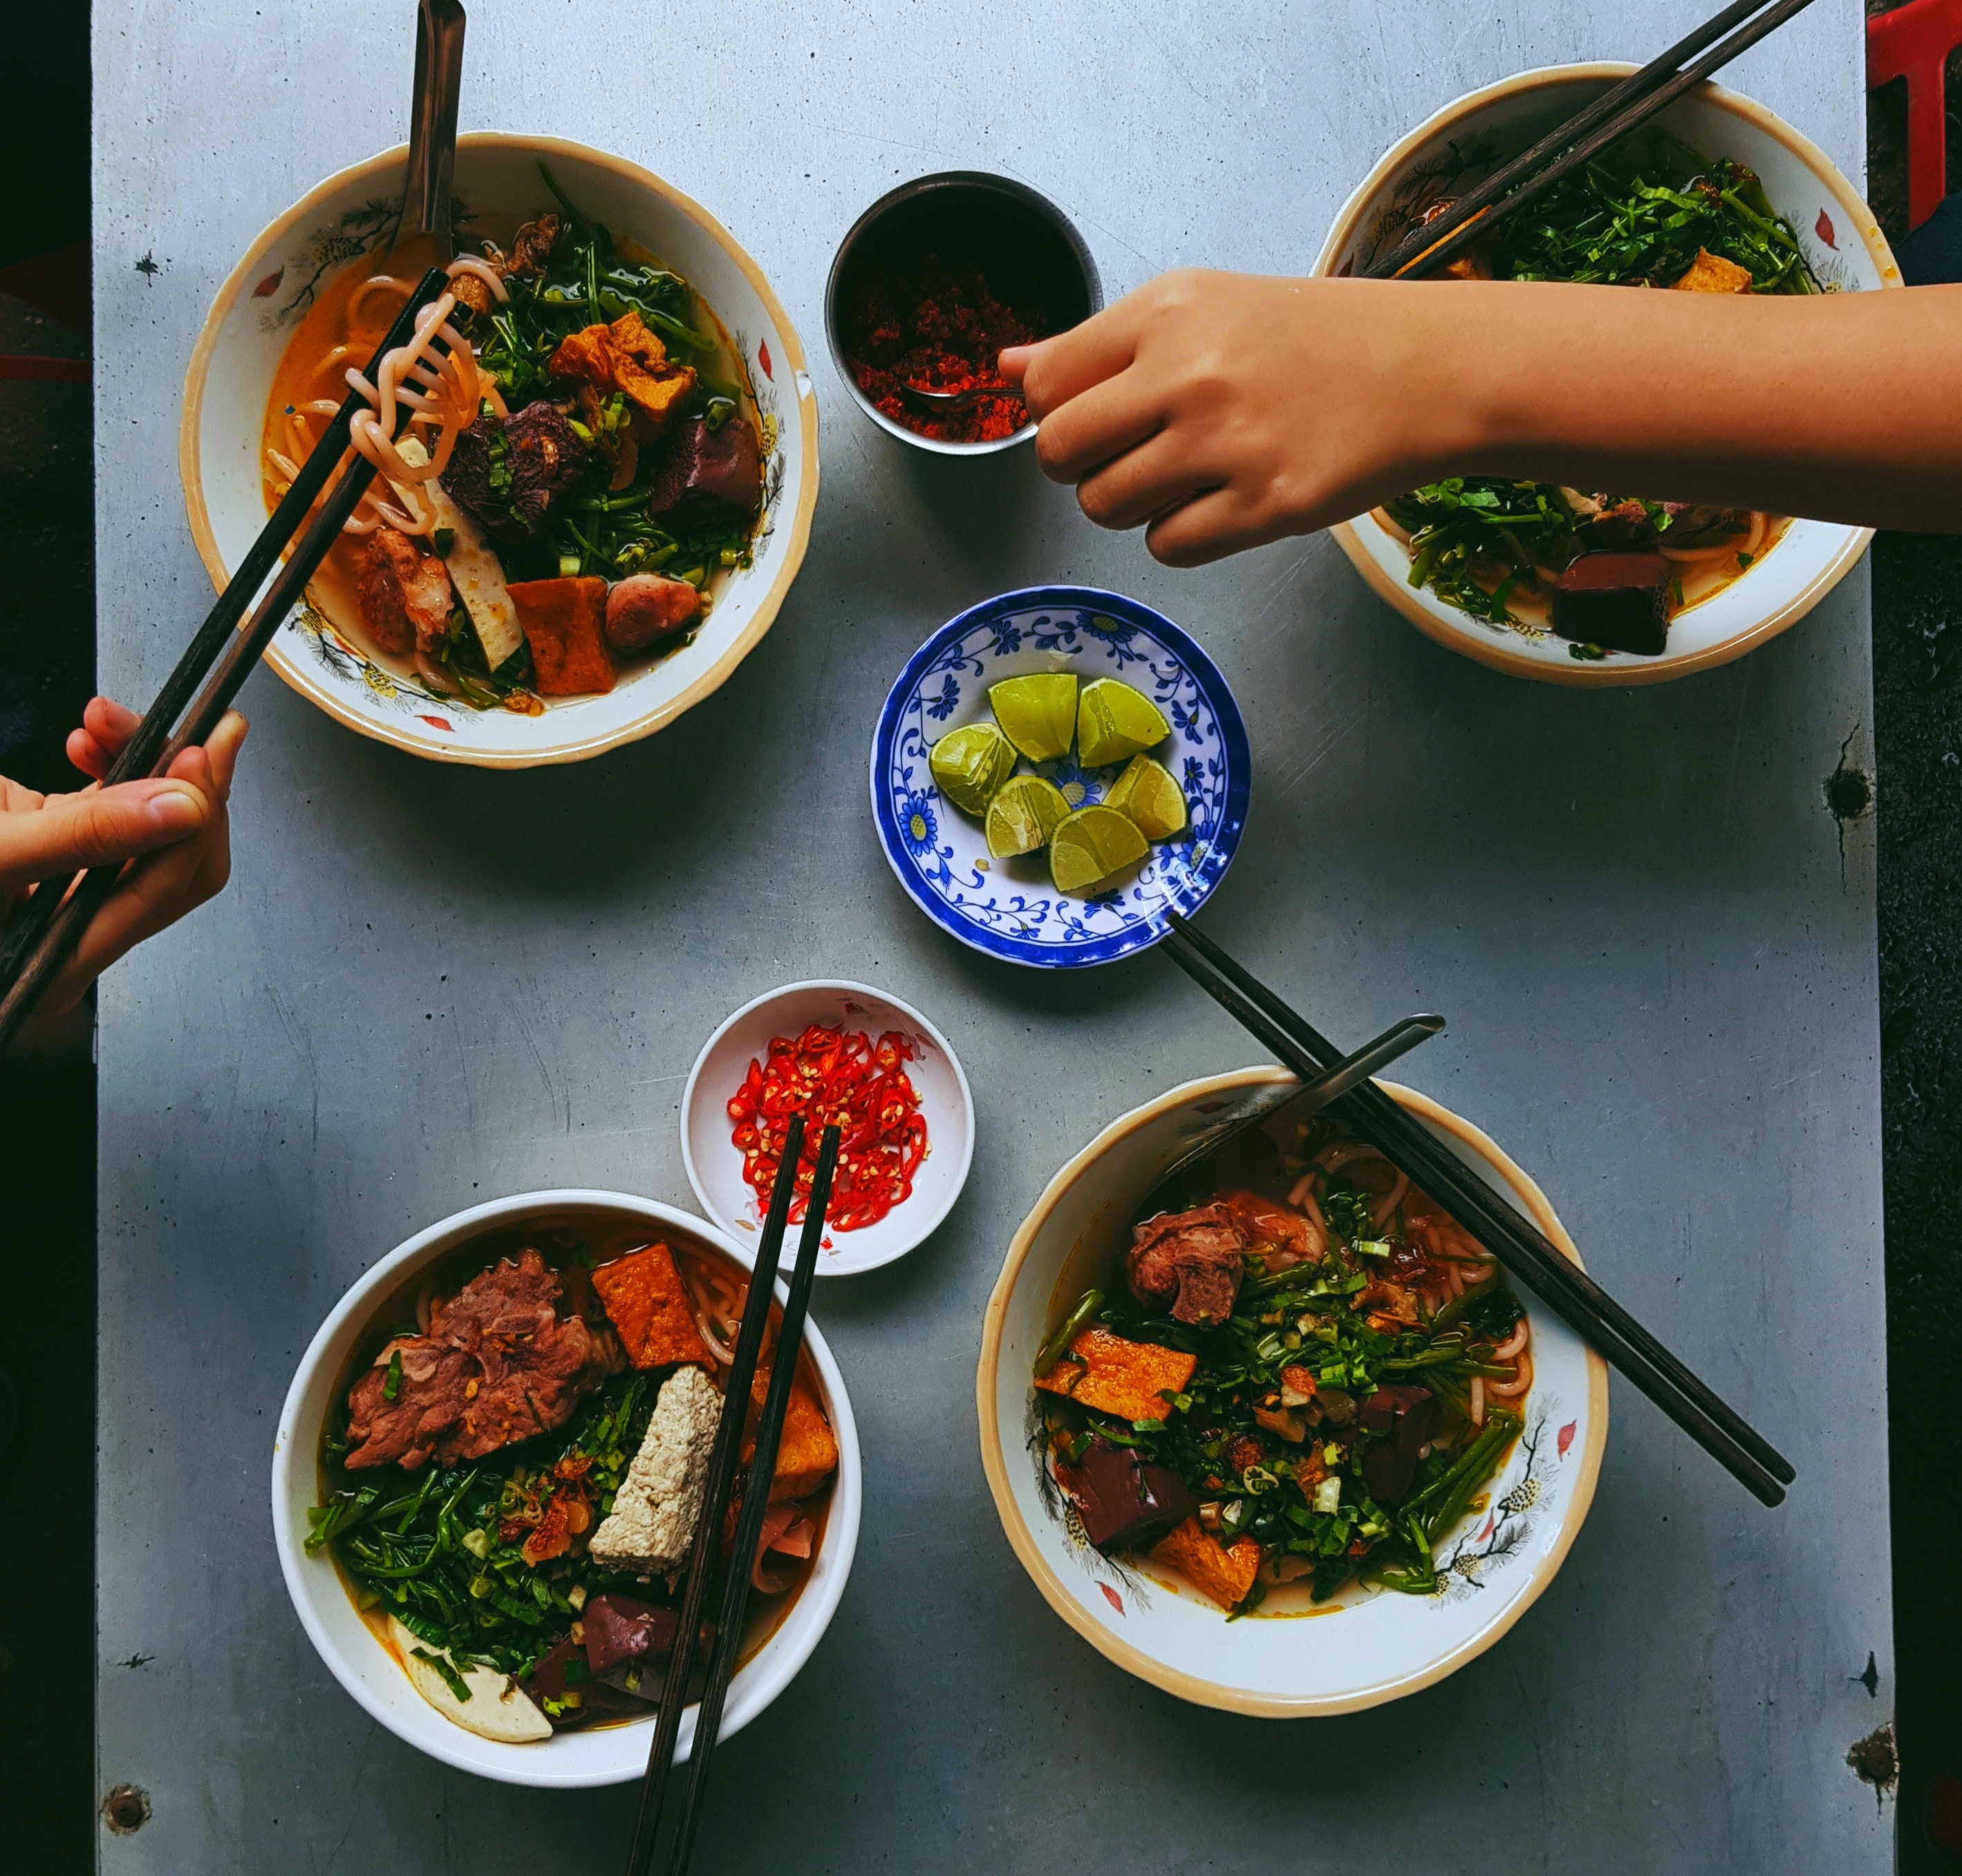 Image shows four bowls of food, each containing noodles, a type of meat, green leafy vegetables and green onions in a broth. Each bowl has chopsticks resting on the side, and there are two smaller bowls in the centre holding lime and chilis.